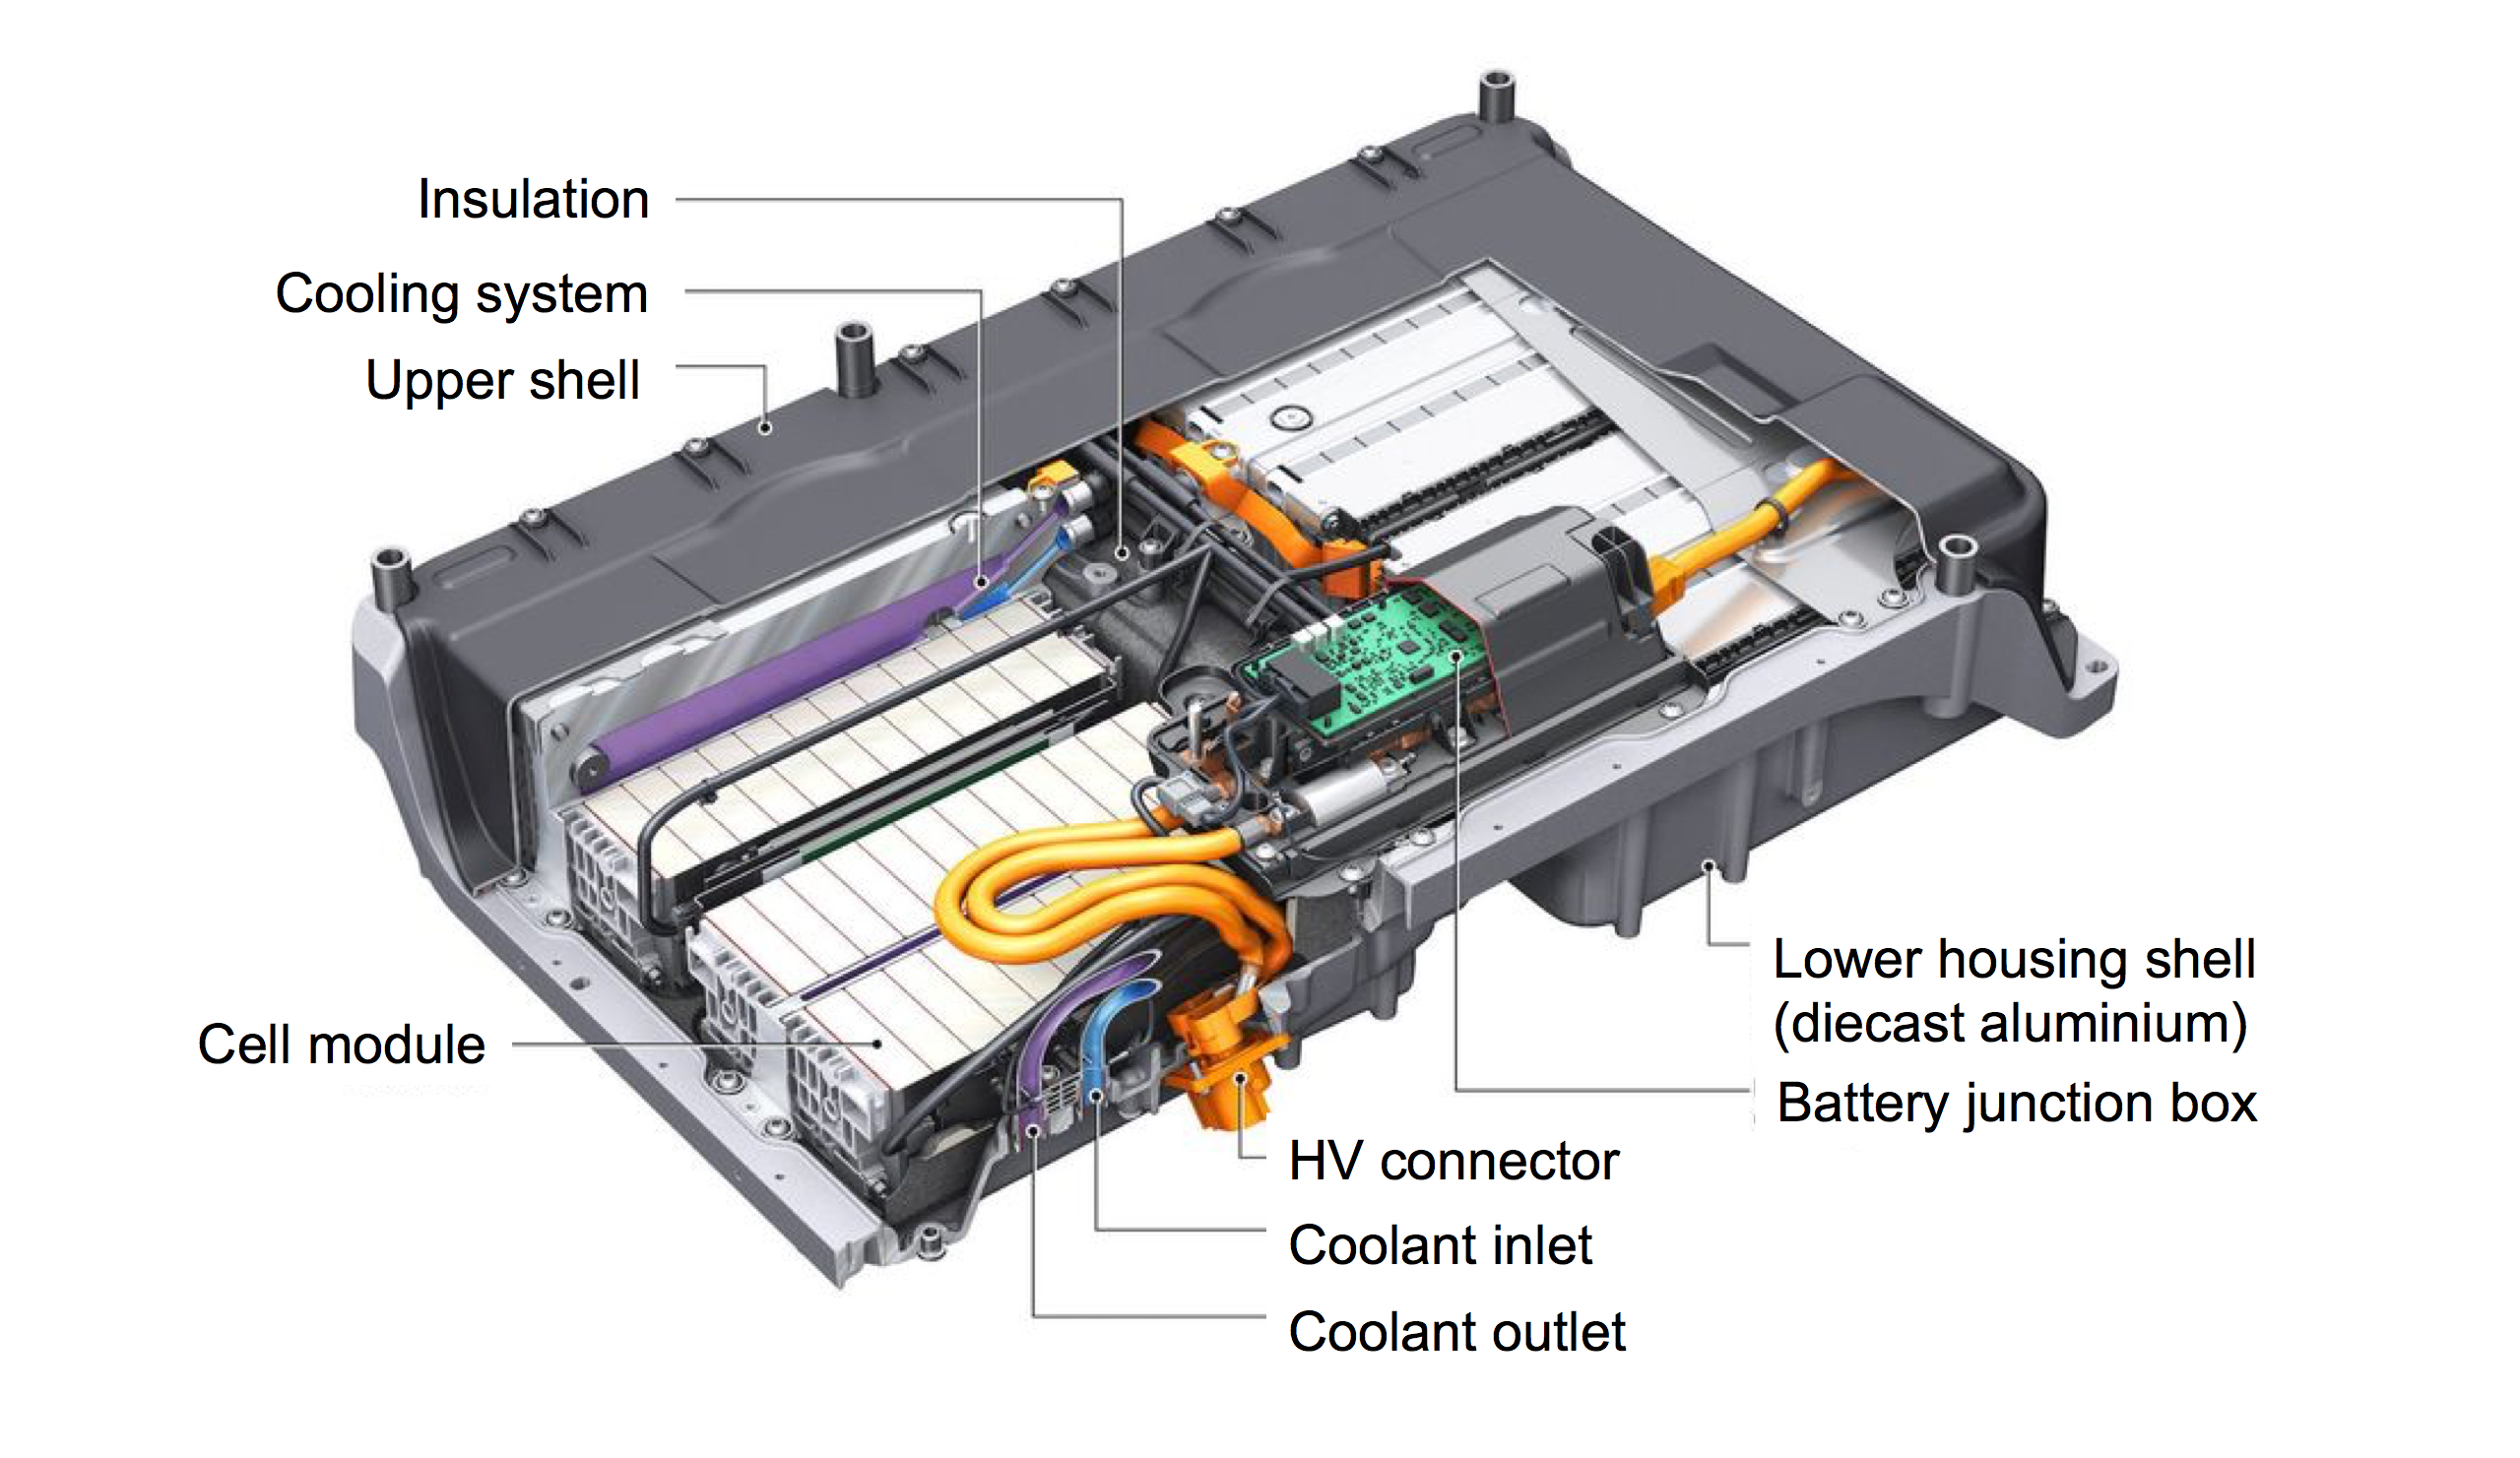 Figure 3. Die-cast aluminum battery enclosure for the Audi e-tron.